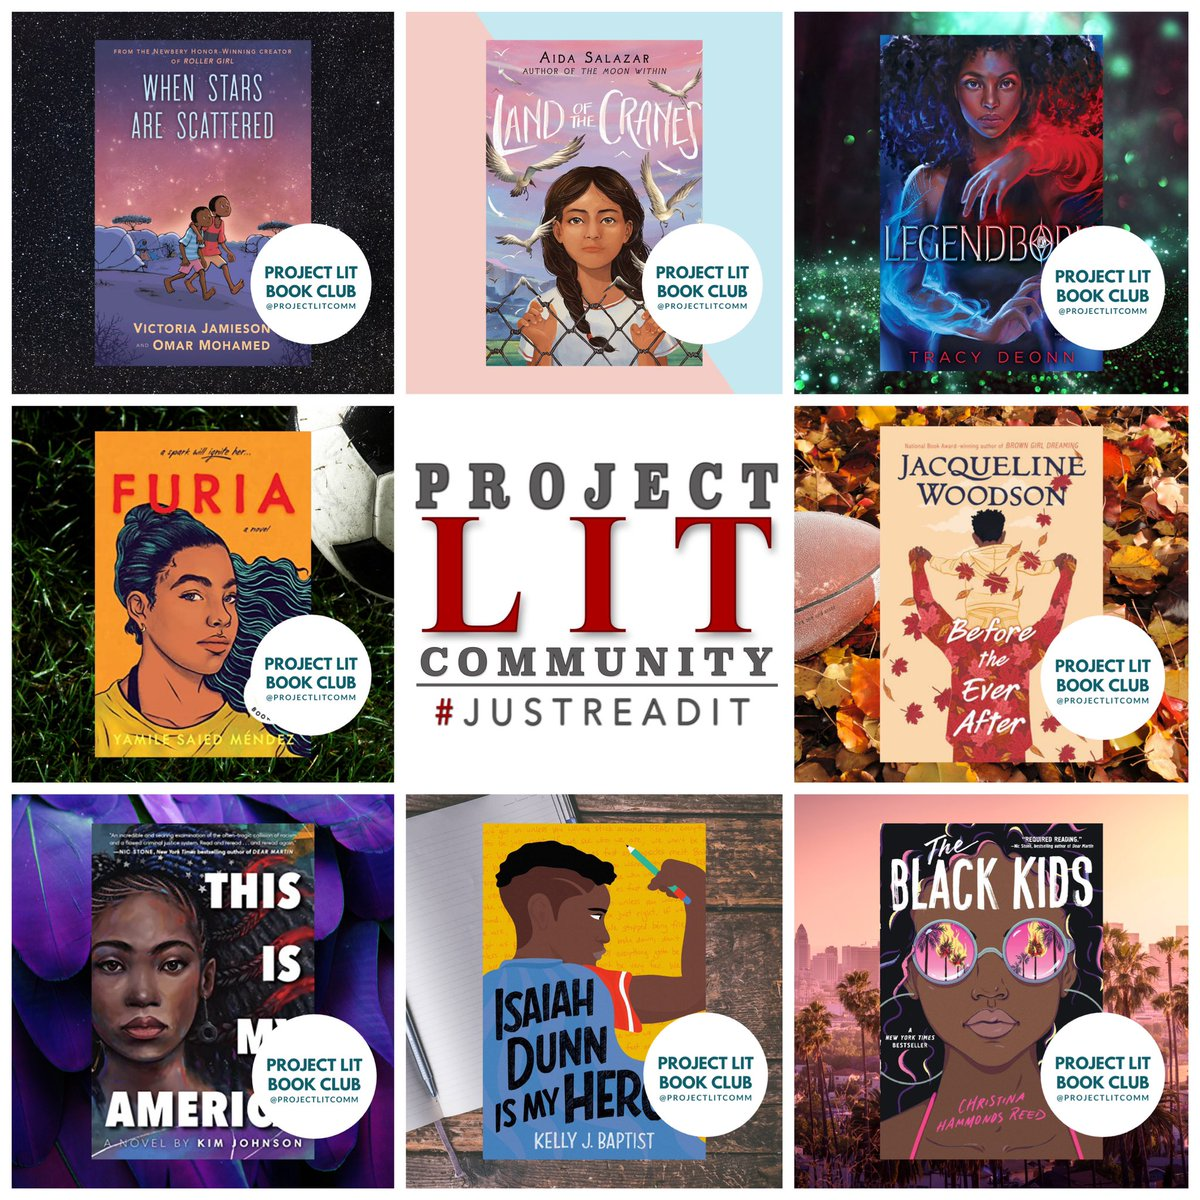 And then there were 8! #ProjectLITBookClub